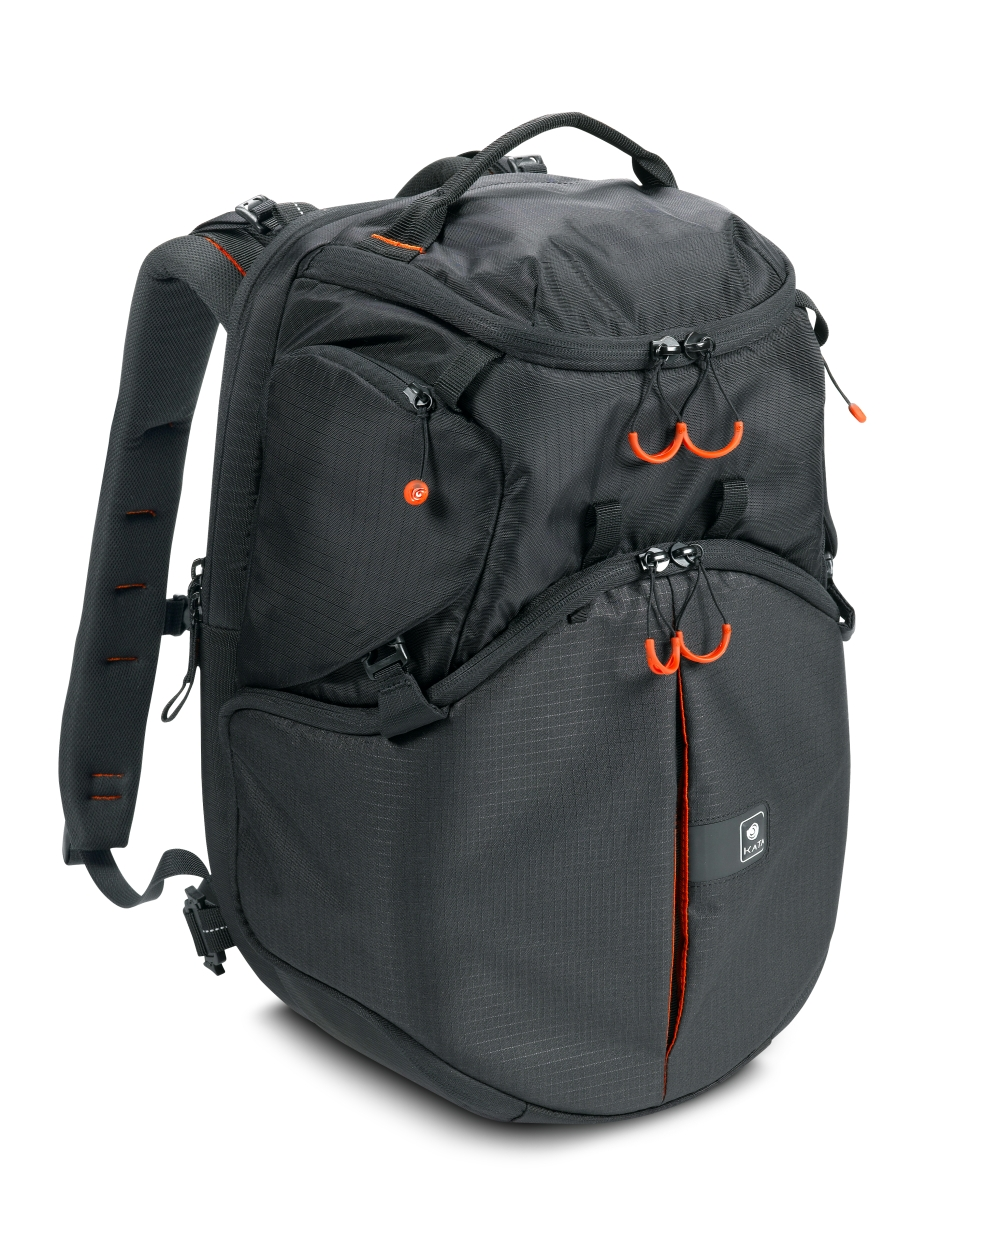 KATA Announces the Revolver-8 PL Backpack